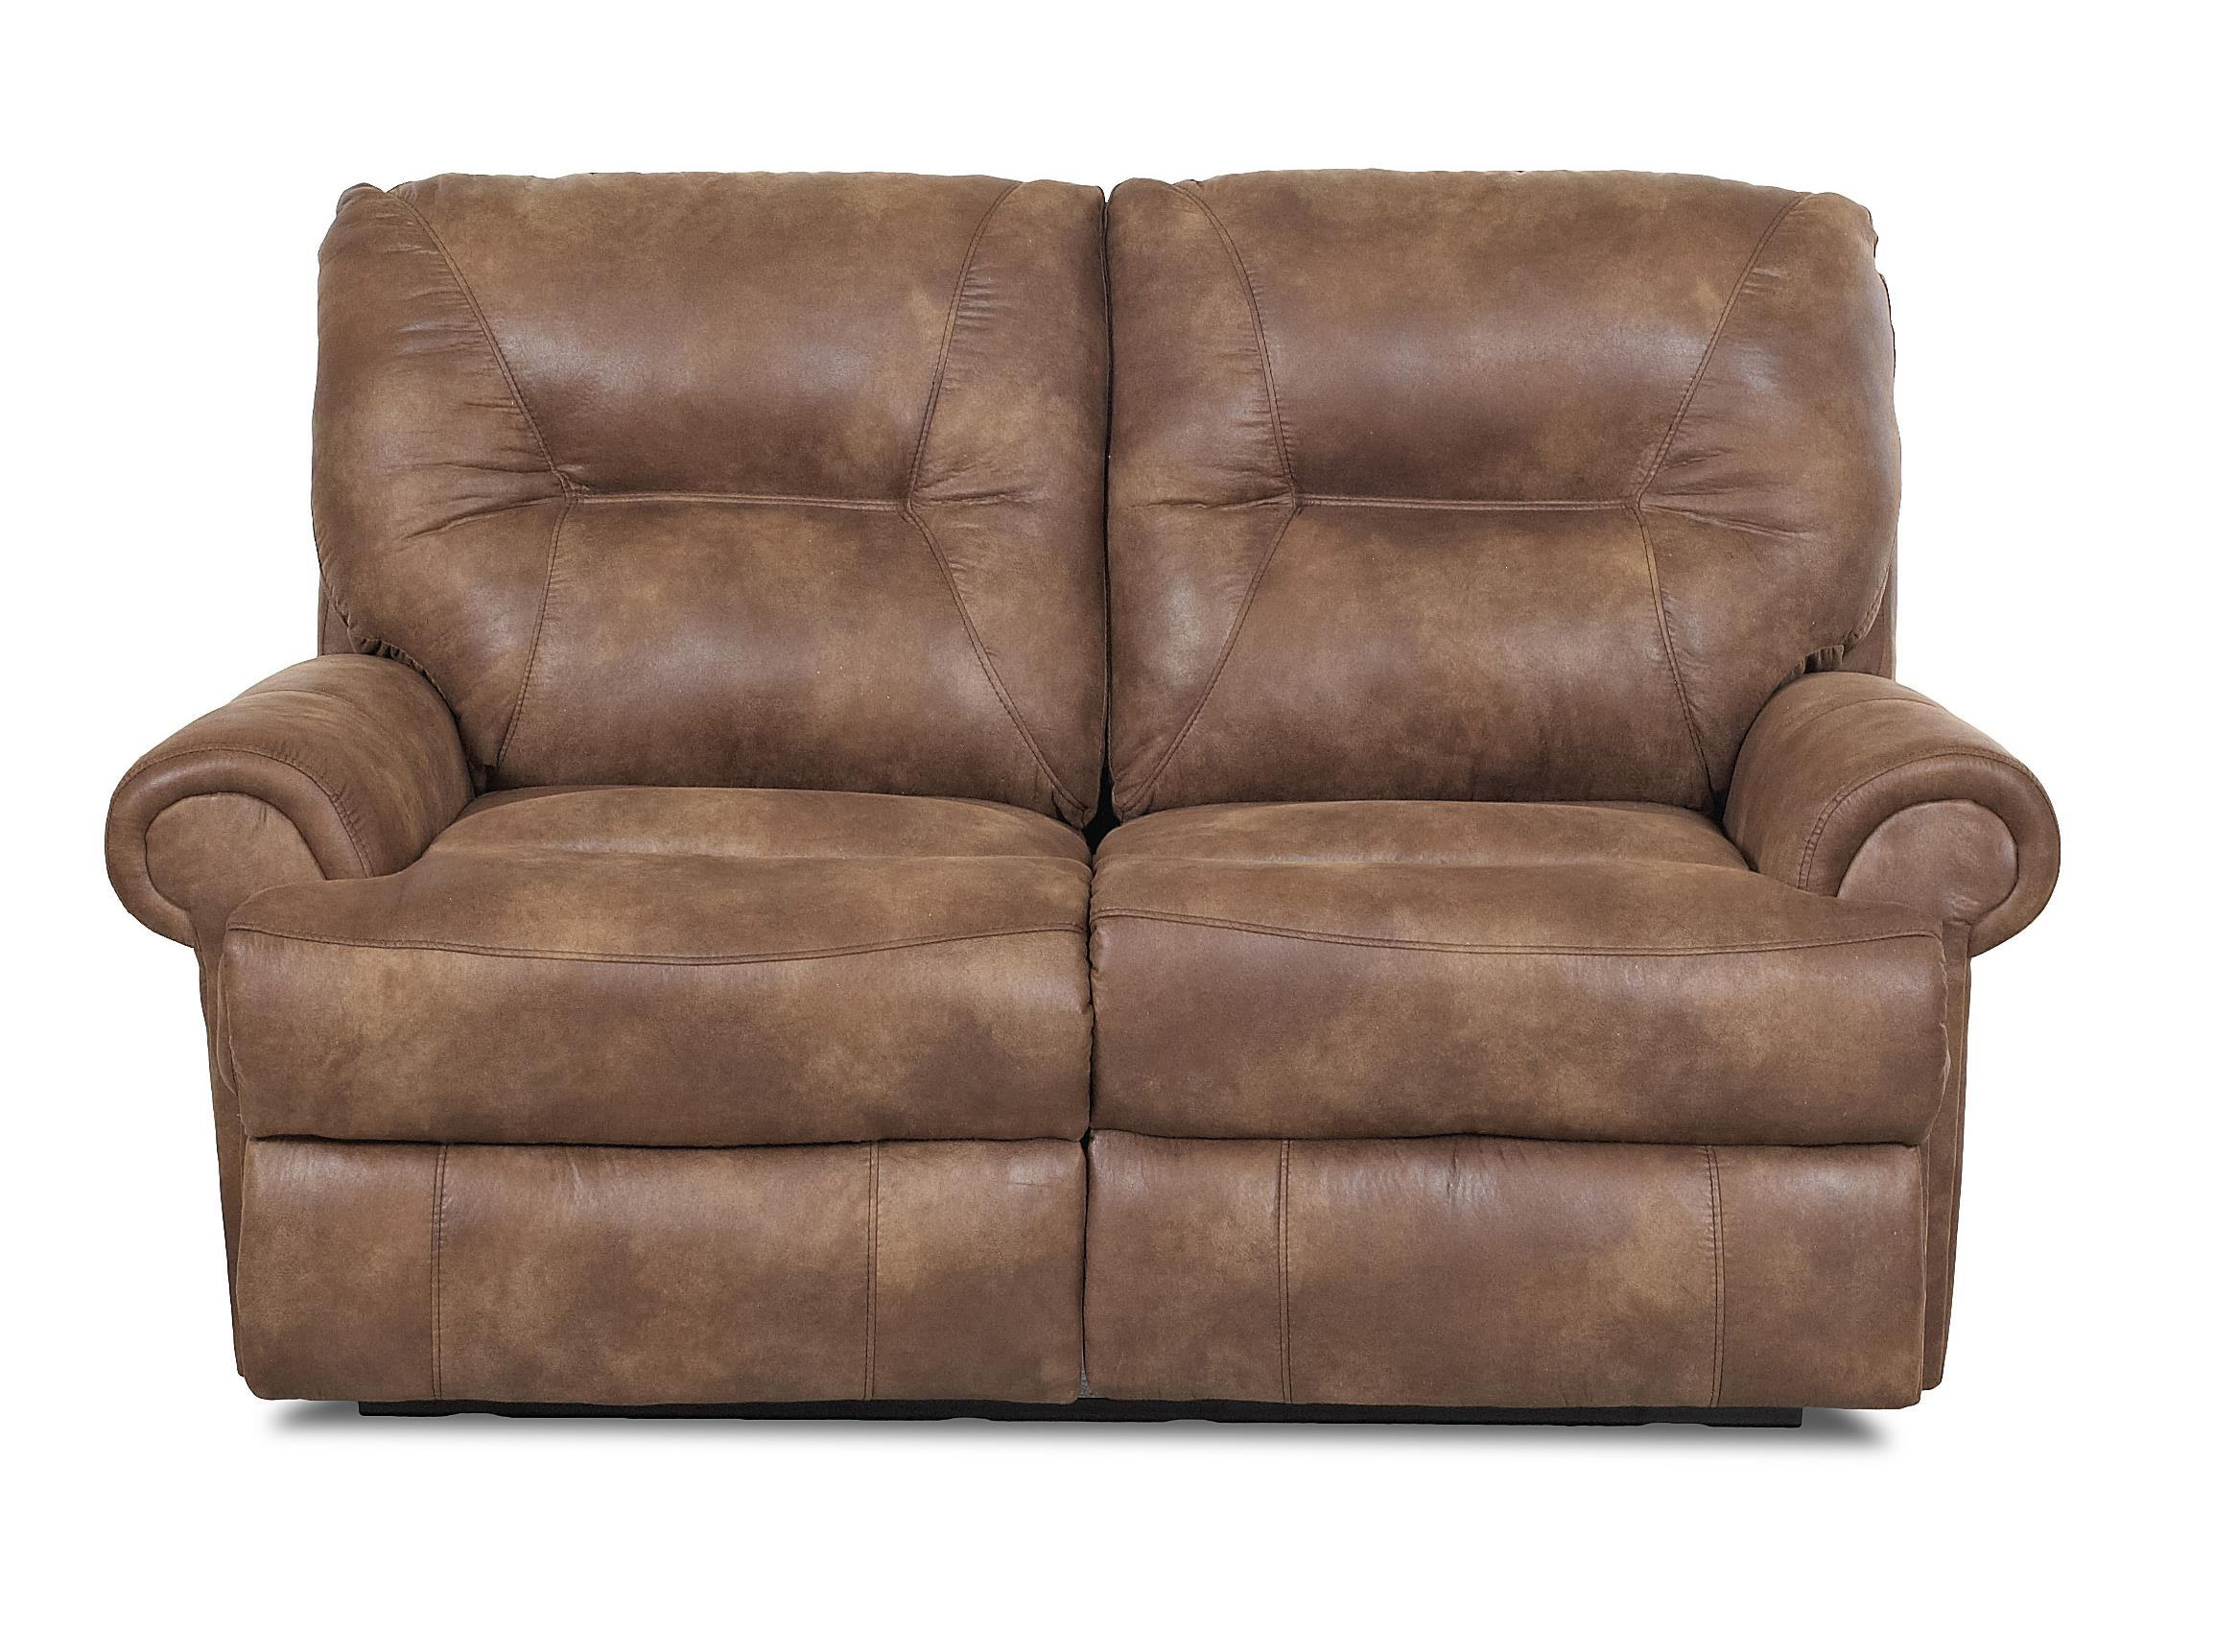 Traditional Reclining Loveseat By Klaussner Wolf Furniture